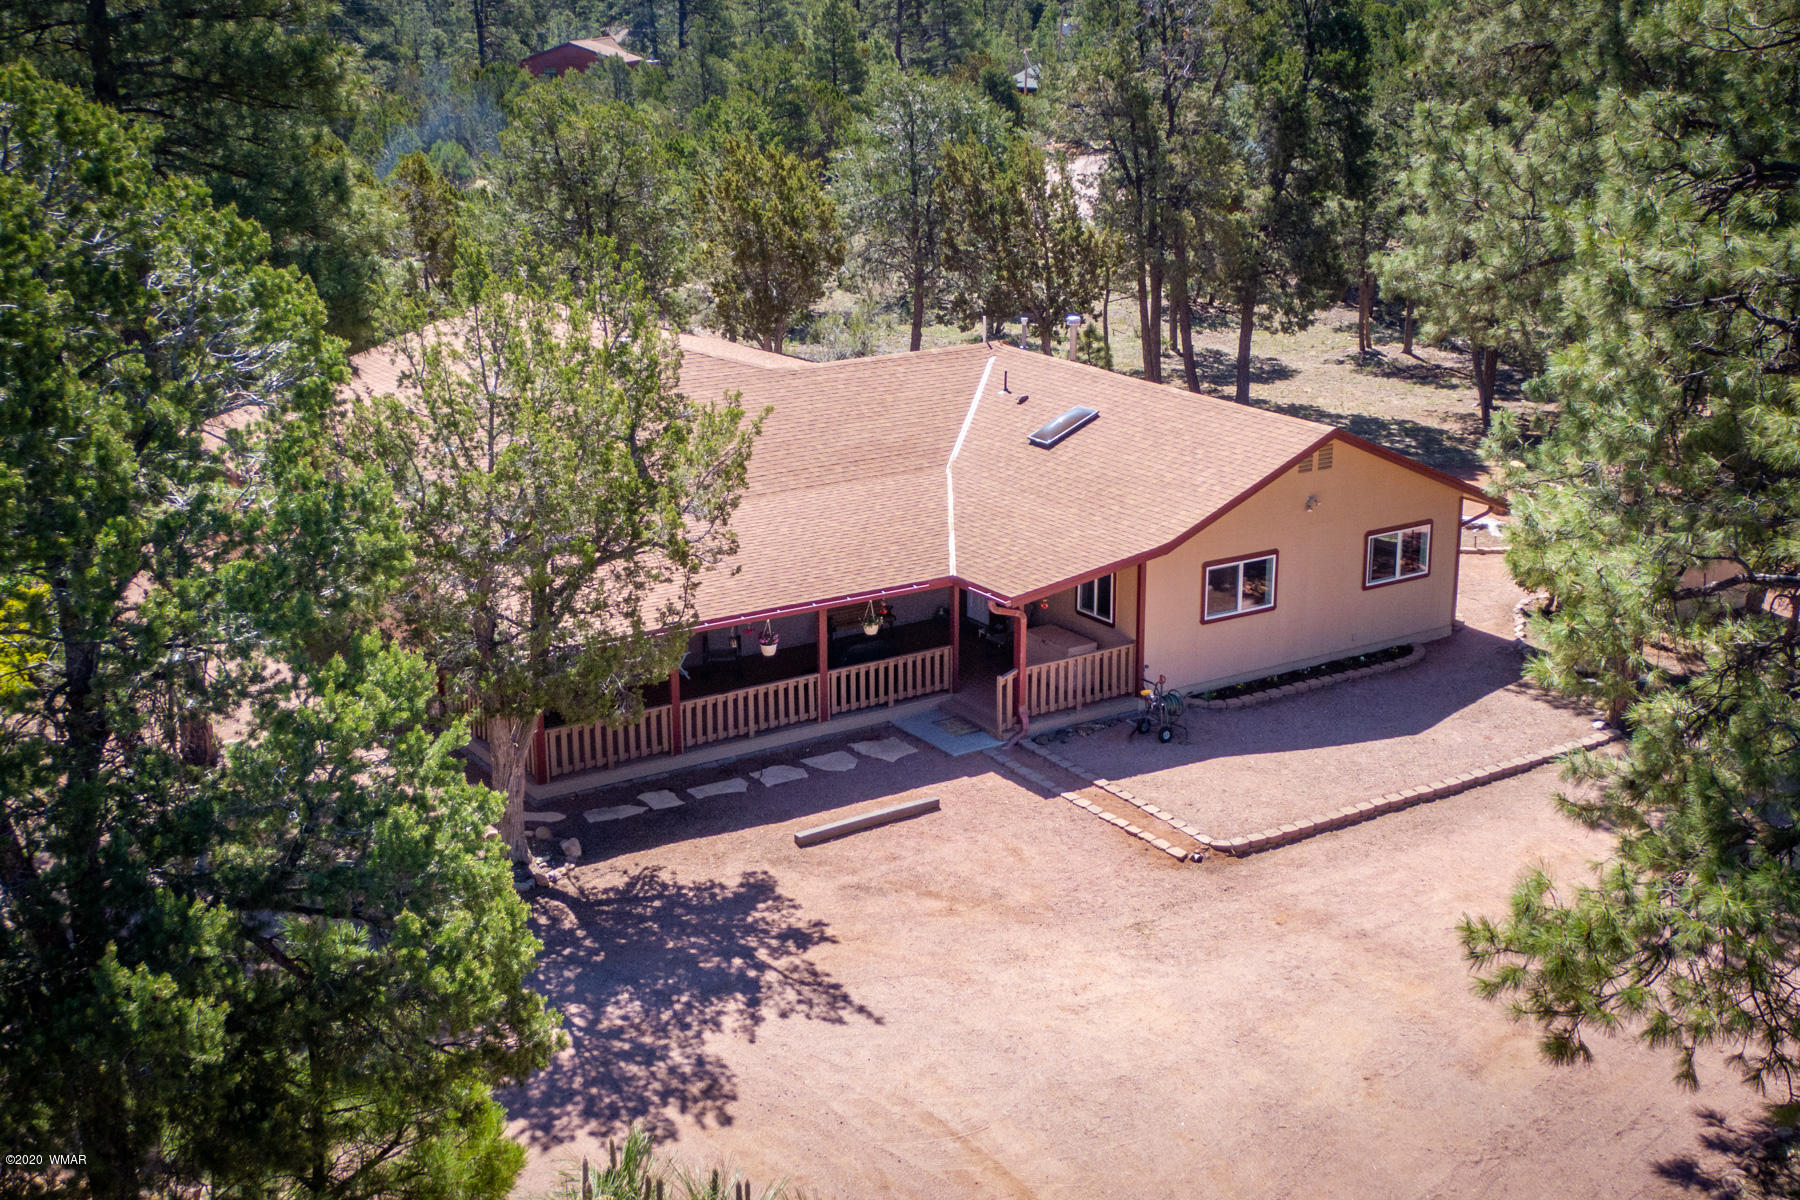 Seclusion in the Towering Tall Pines! This ranch style single level home has a split floor plan w/ 3 bdrm, 2 bath plus expansive office or exercise room and an add'l hobby/workroom. Interior boasts beautiful new engineered laminate floors, upgraded kitchen cabinets, new lighting as well as a formal dining room and wood-burning stove. Outside offers a large covered composite deck overlooking 2.75 acres of heavily treed property ideal for gathering w/ family and friends or watching the kids and animals to run and play. The property also comes with an over-sized two-car garage, 20x30 carport, RV dump & hookup, utility sheds, raised garden, chain link cross fencing and so much more. All this conveniently located in the heart of Heber-Overgaard, only minutes away from Nat'l Forest. Call TODAY!